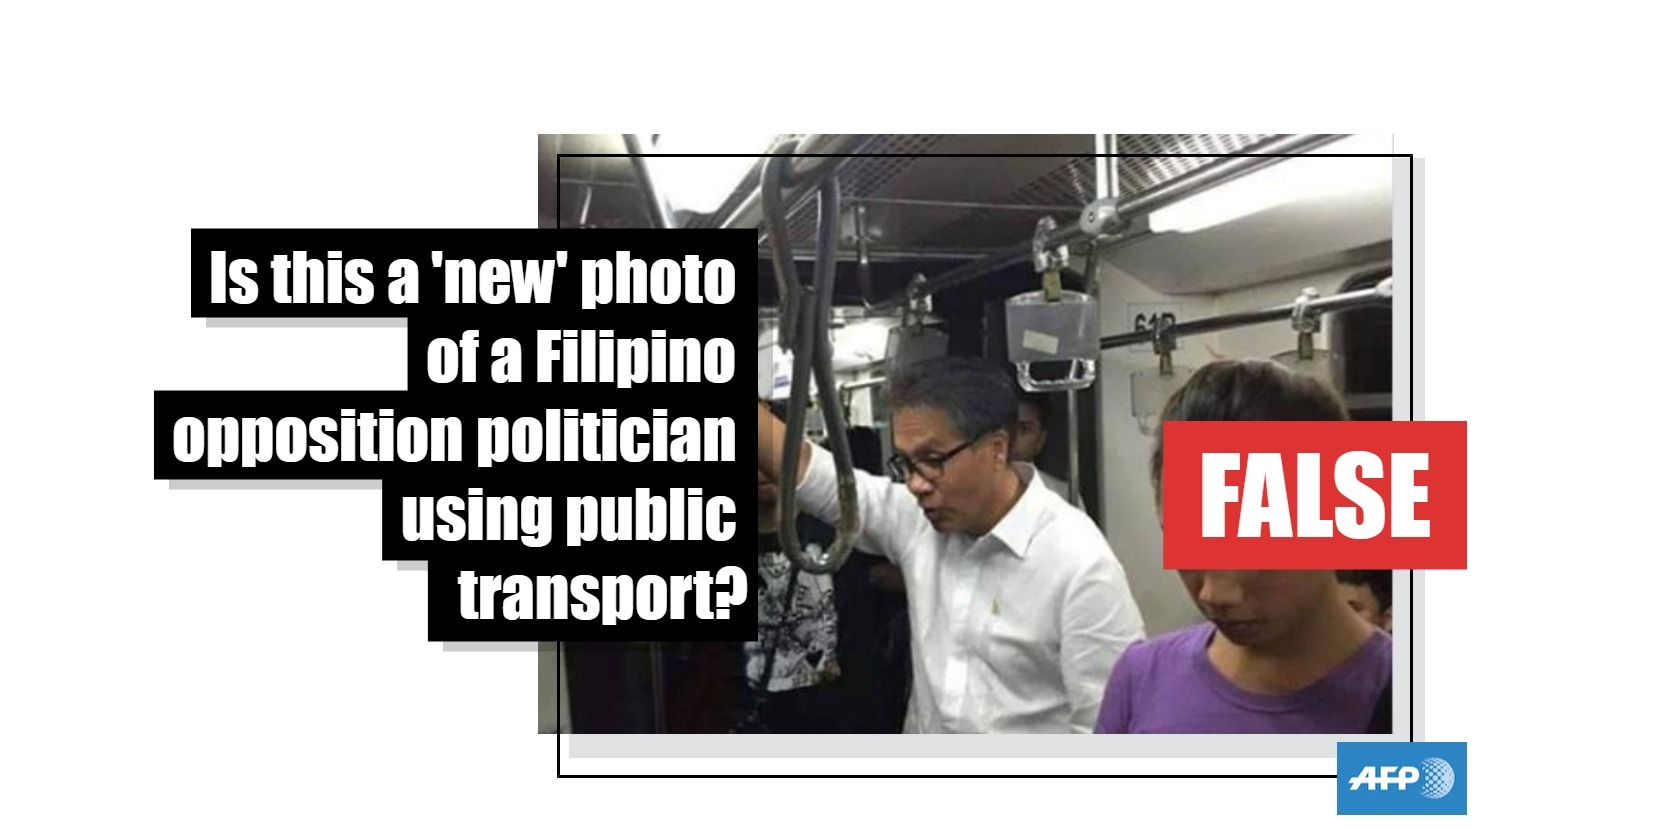 No, this is not a new photo of an Filippino opposition politician using public transport